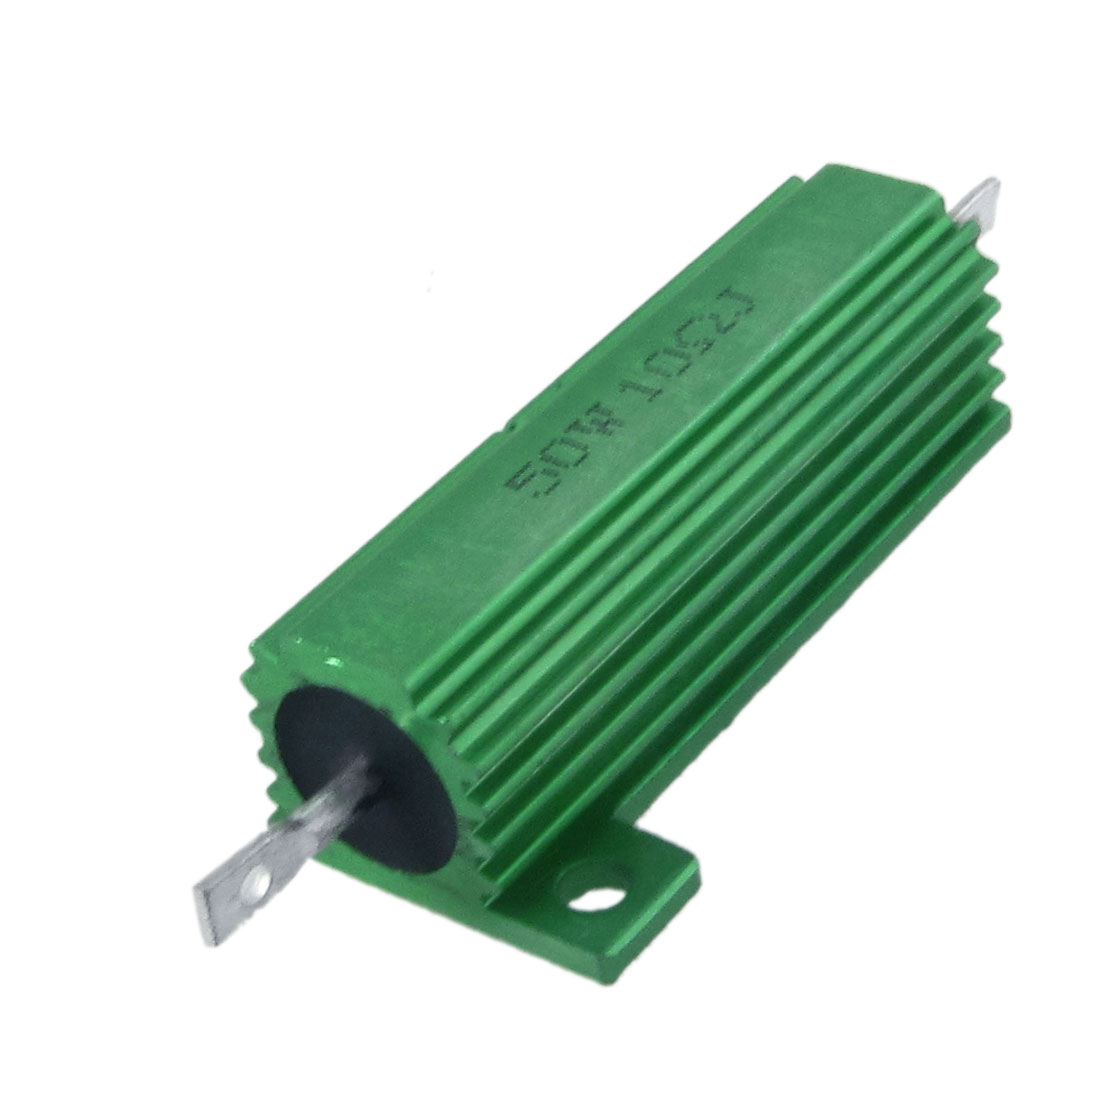 2 x Chassis Mounted 50W 10 Ohm 5% Aluminum Case Wirewound Resistors Green